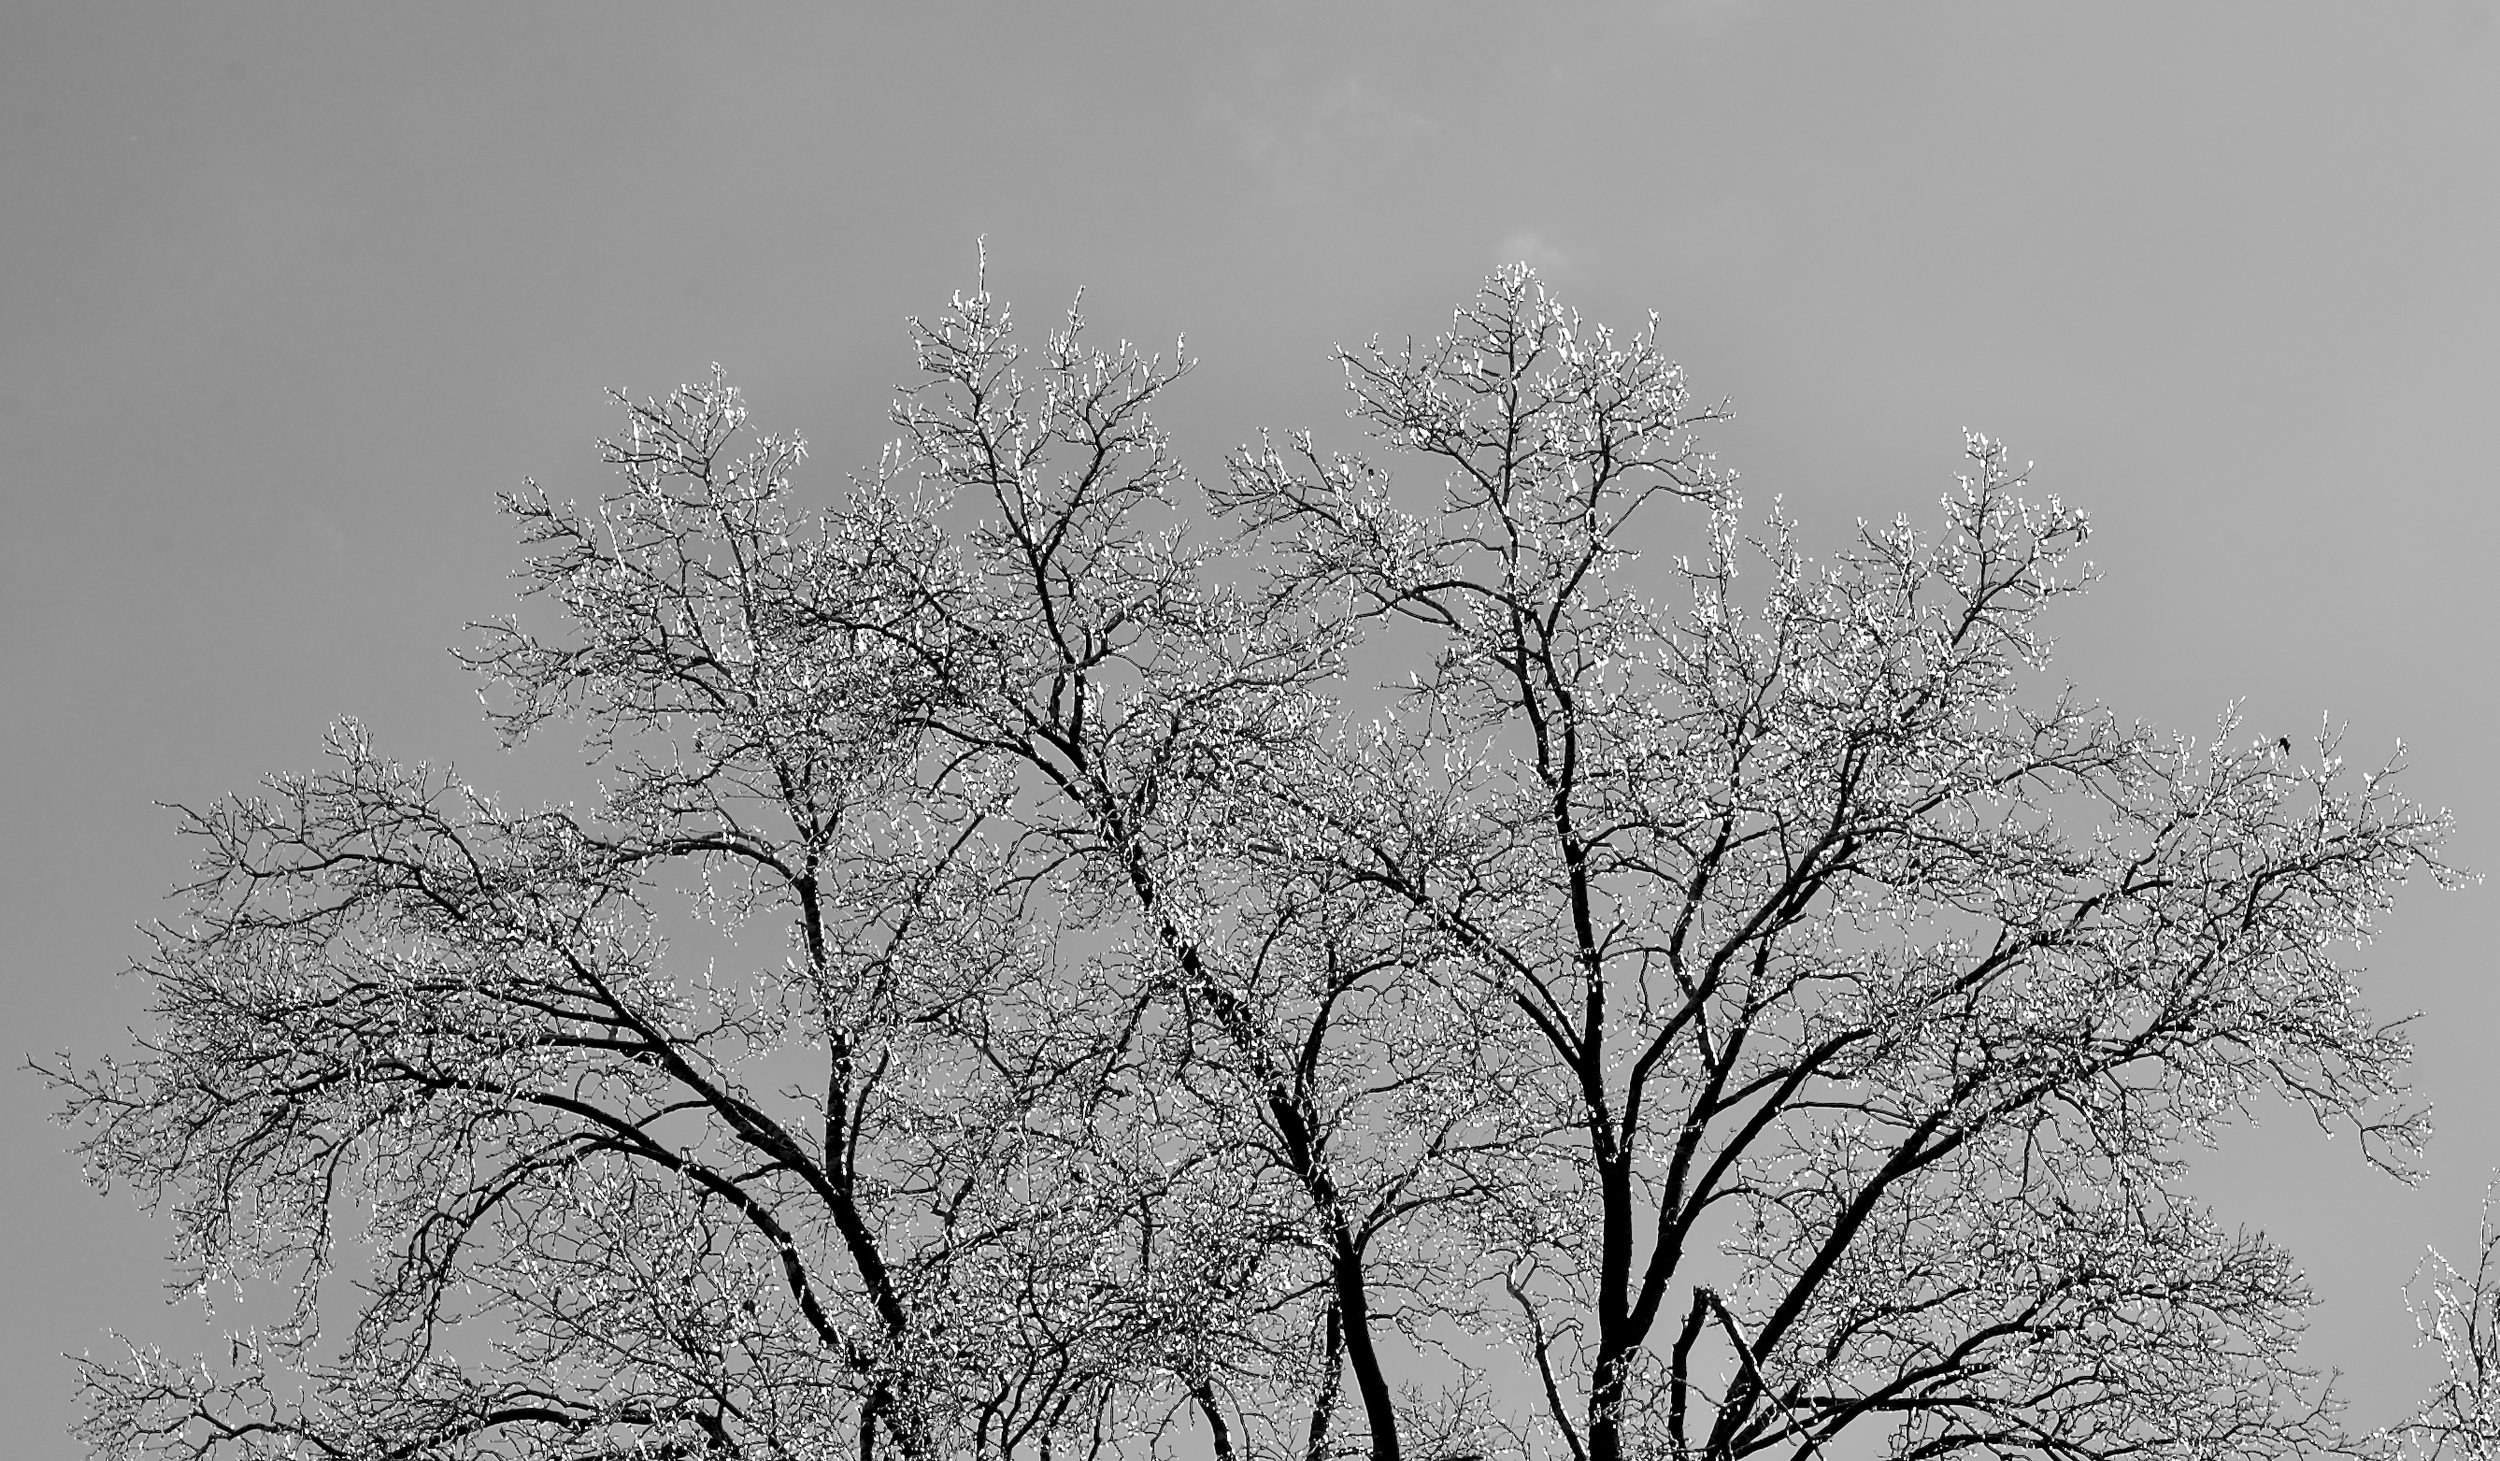 Iced Branches. Midvale Heights. Madison, Wisconsin. February 2017. © William D. Walker